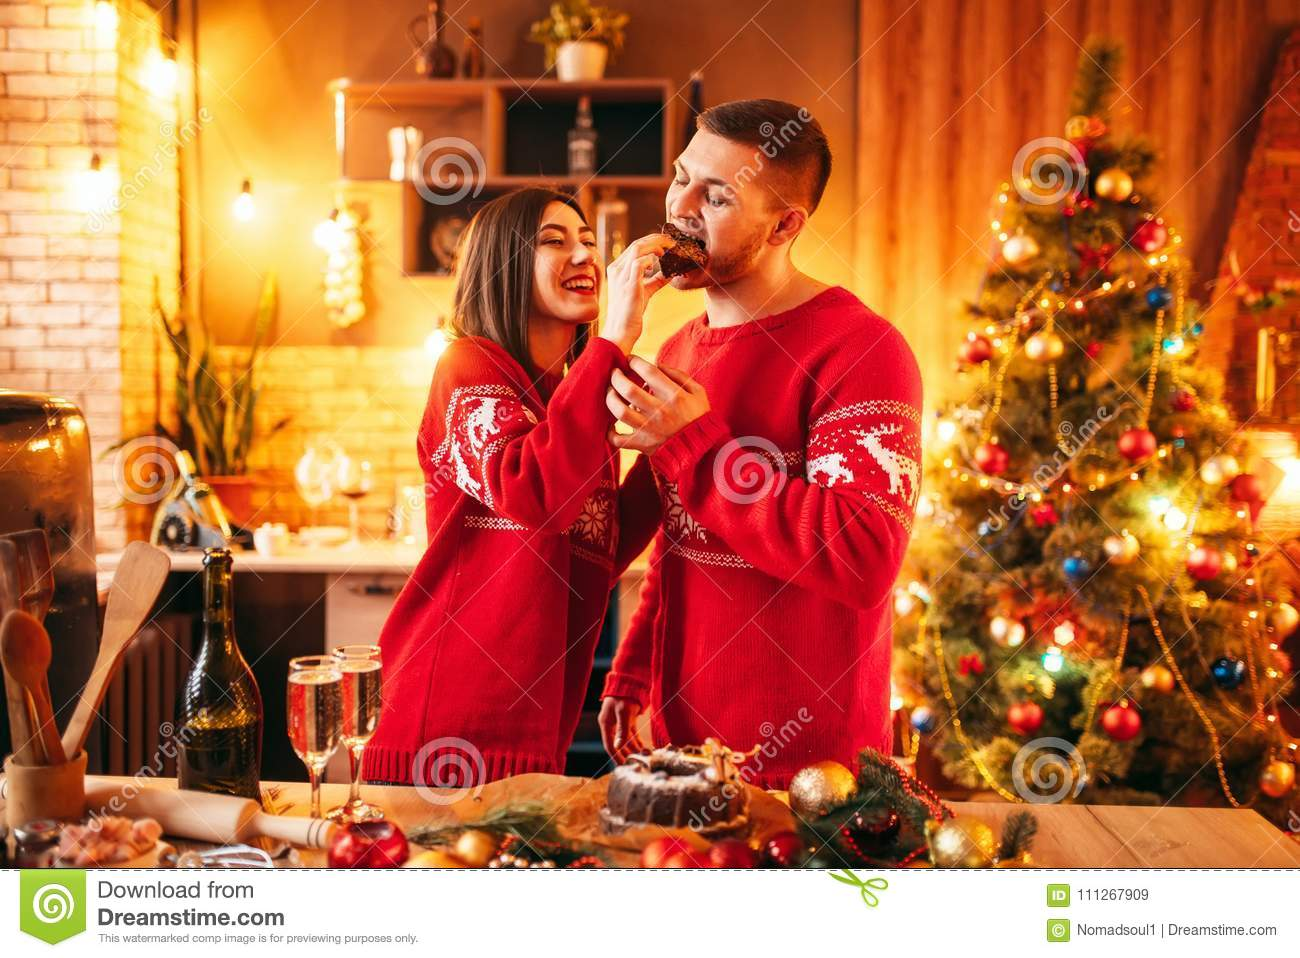 A Husband For Christmas.Wife Is Feeding Her Husband A Christmas Cake Stock Image